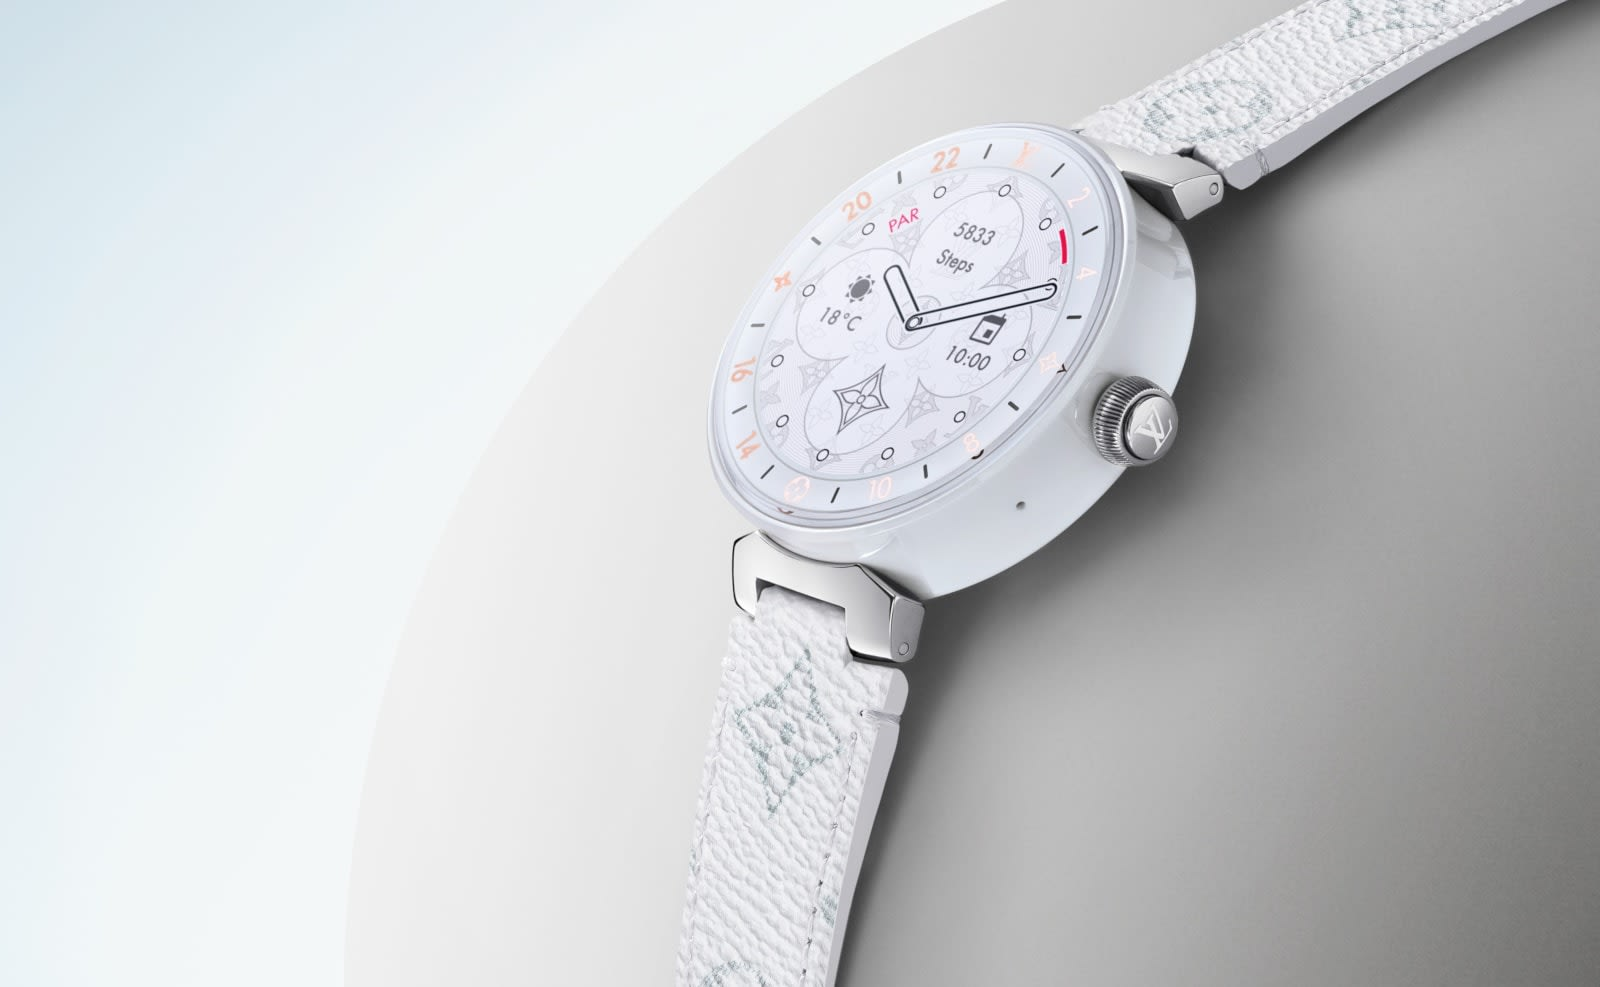 275f0adf79e7 Louis Vuitton's pricey smartwatch gets a big upgrade for 2019